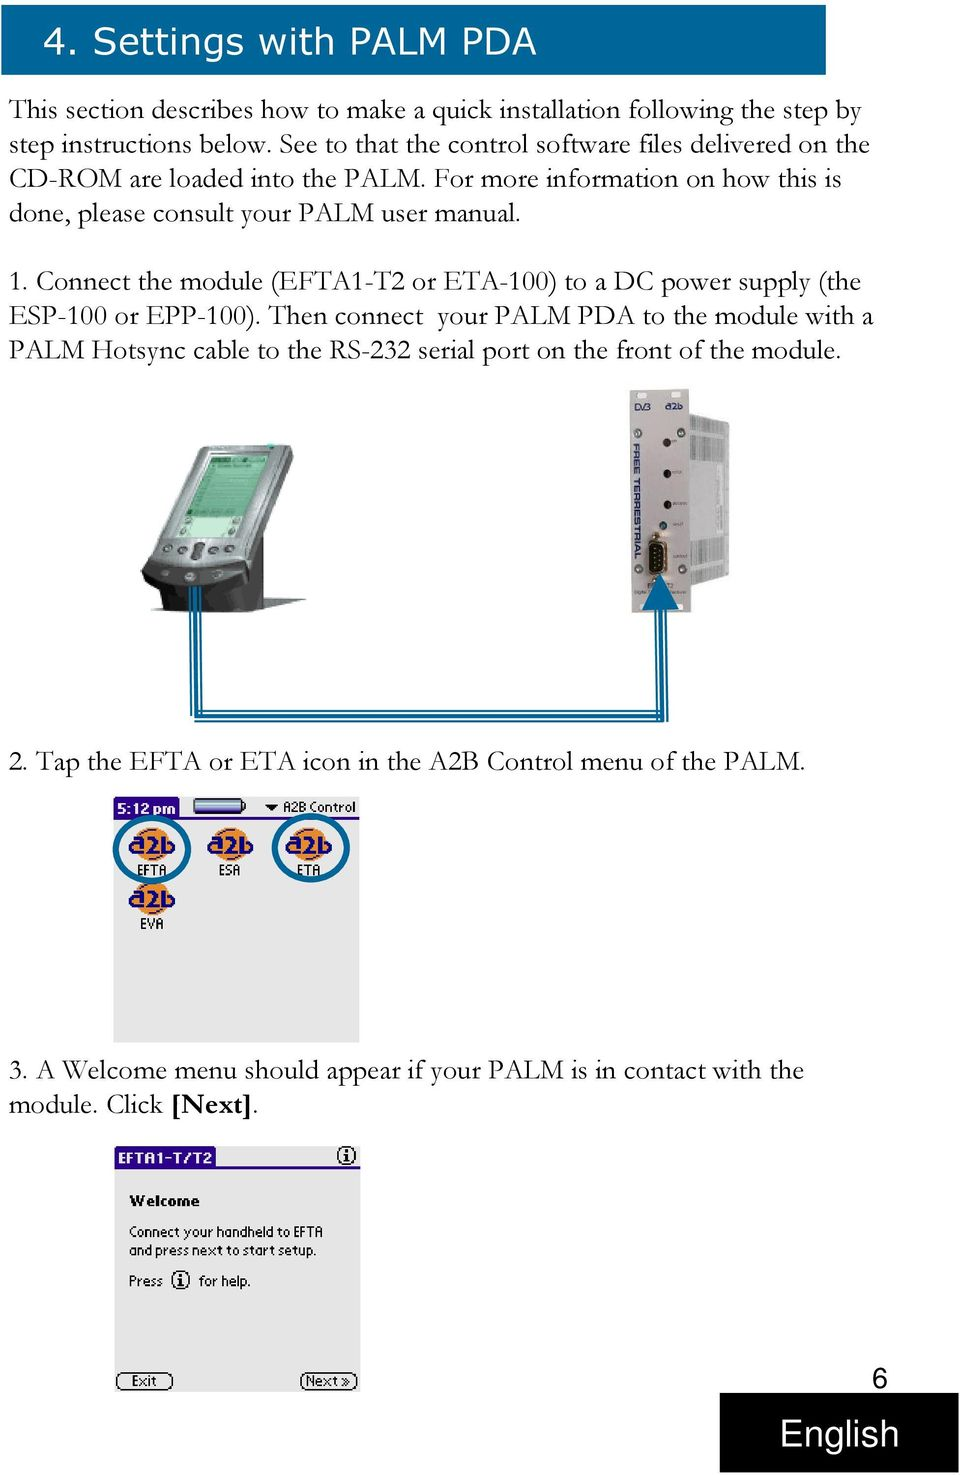 1. Connect the module (EFTA1-T2 or ETA-100) to a DC power supply (the ESP-100 or EPP-100).